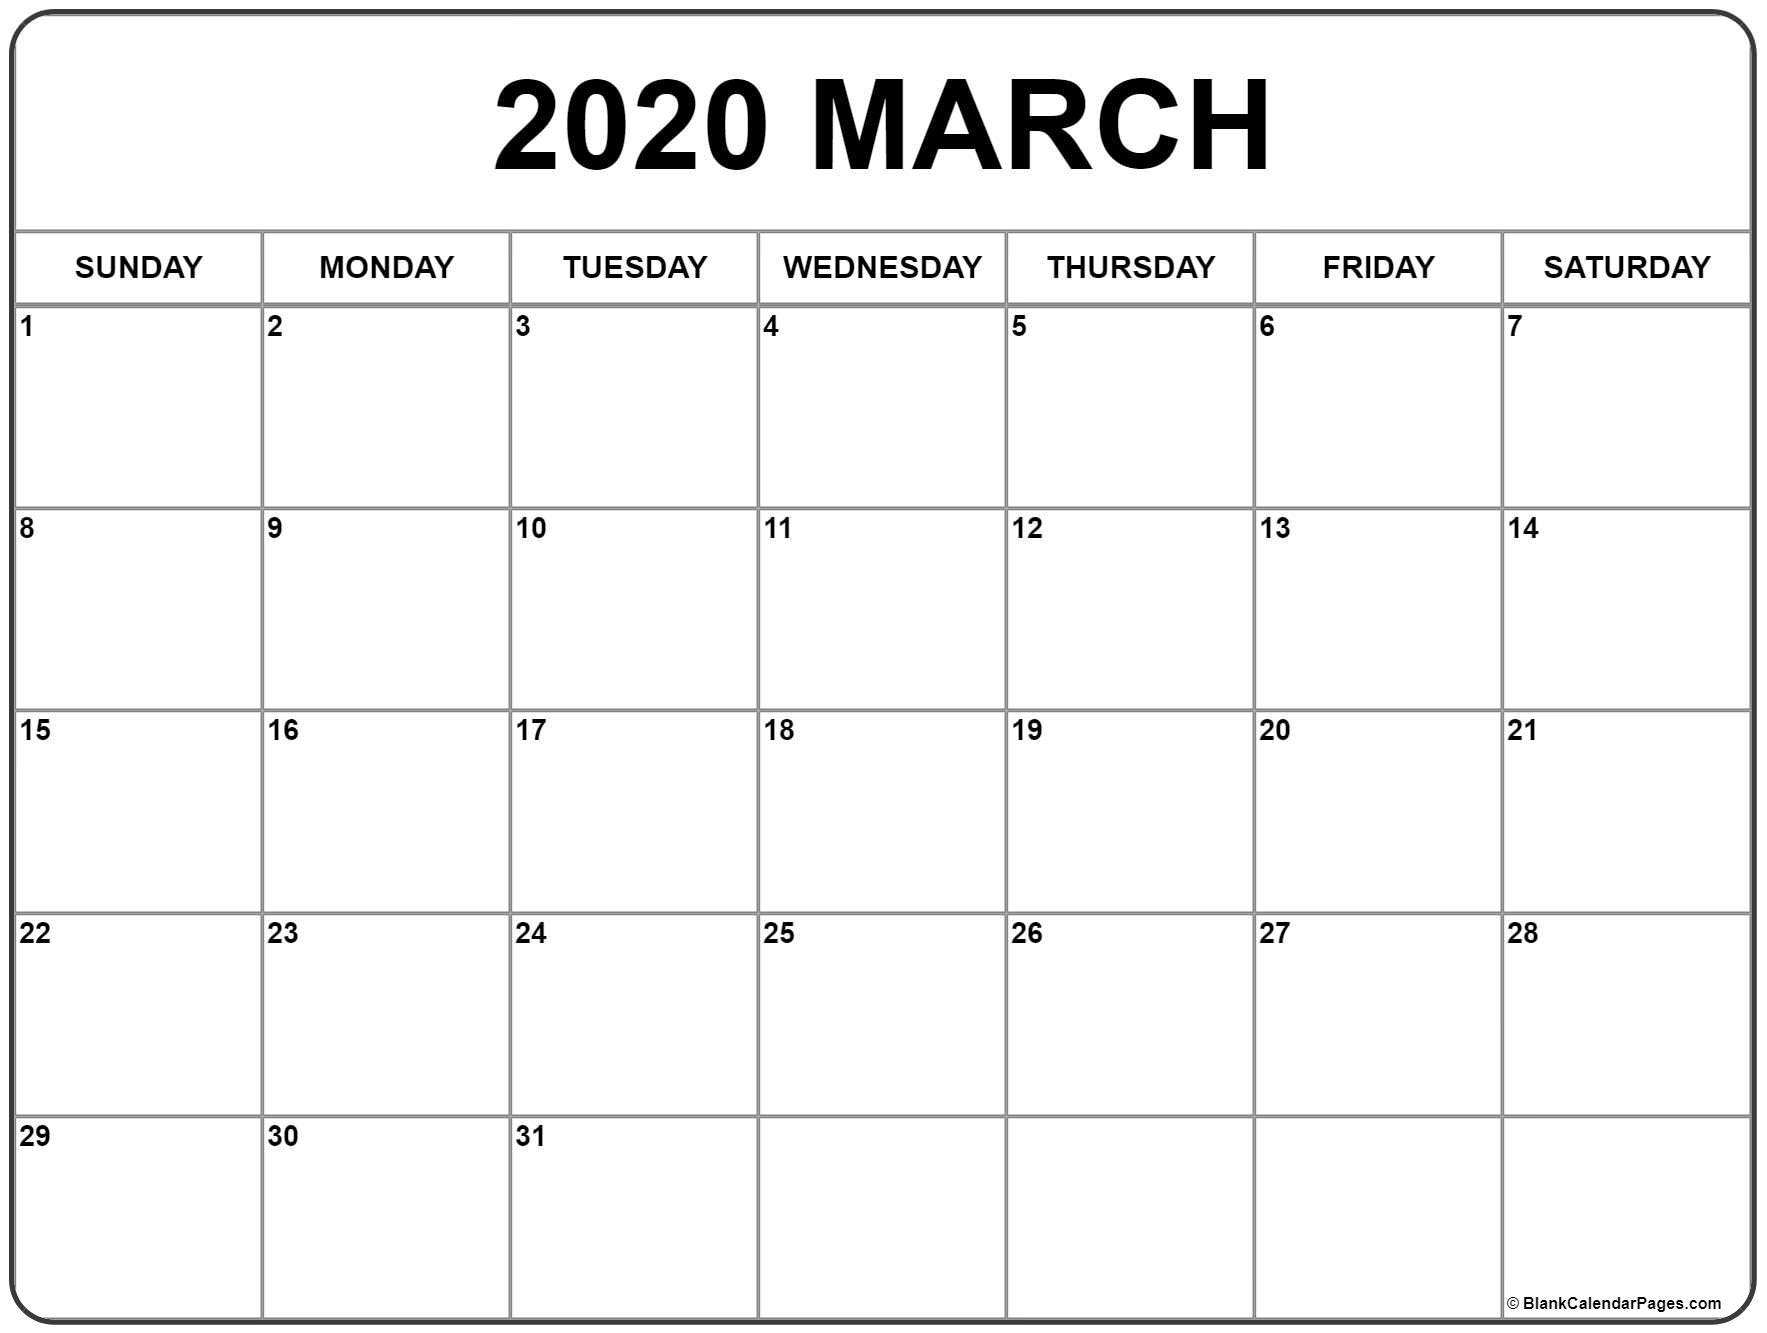 March 2020 Calendar | Free Printable Monthly Calendars inside Writing Calendar For 2020